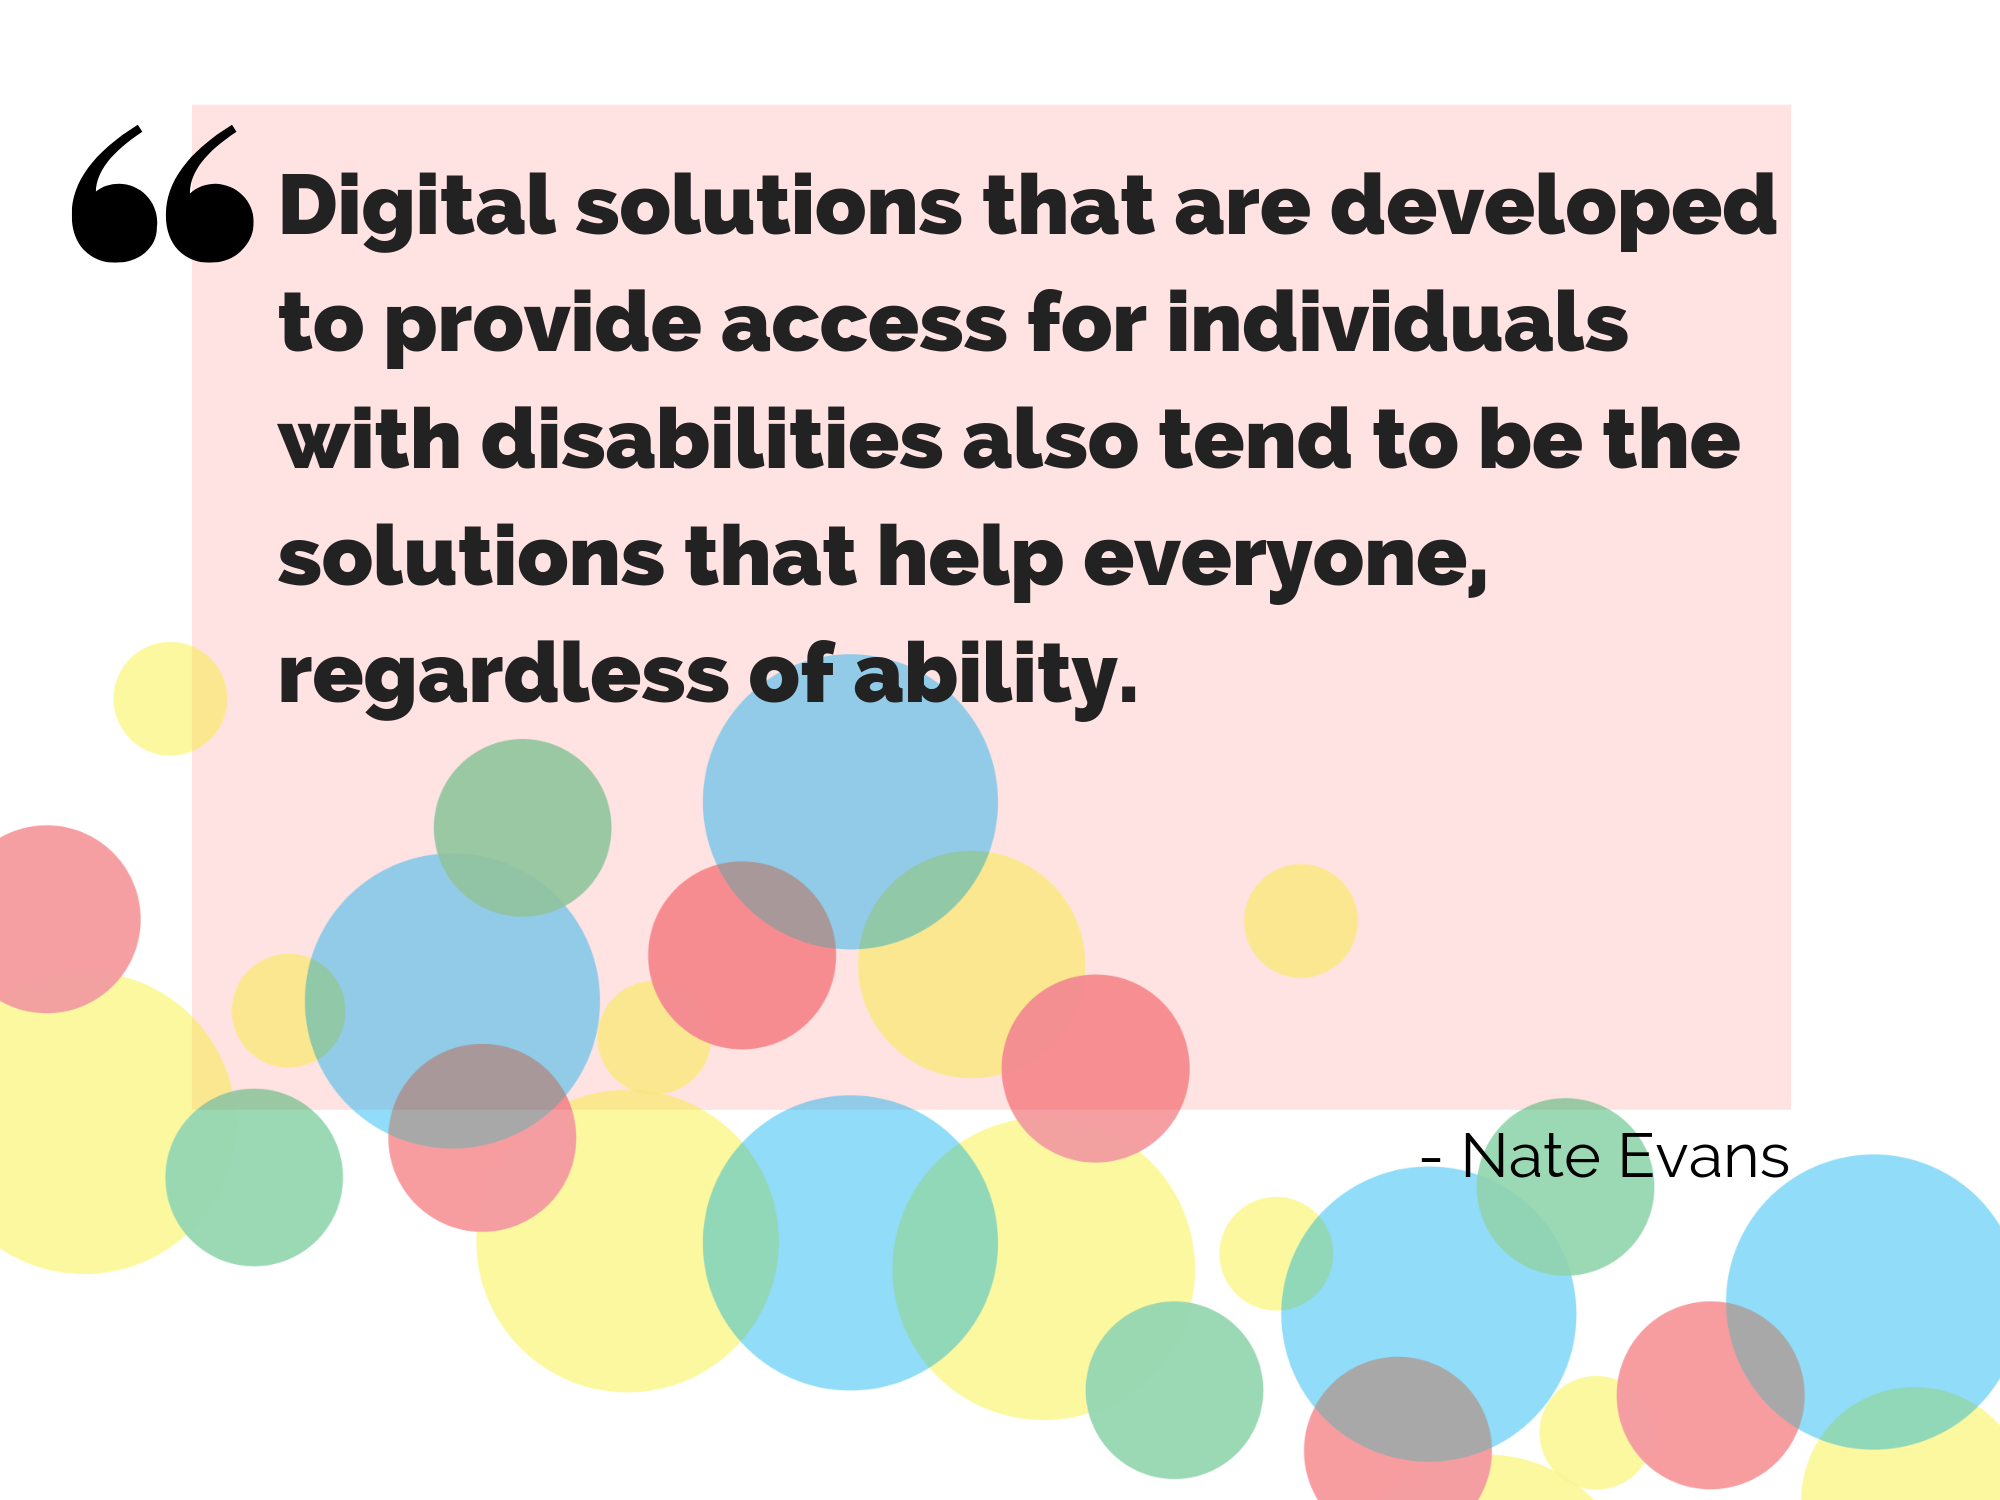 Digital solutions that are developed to provide access for individuals with disabilities also tend to be the solutions that help everyone, regardless of ability.